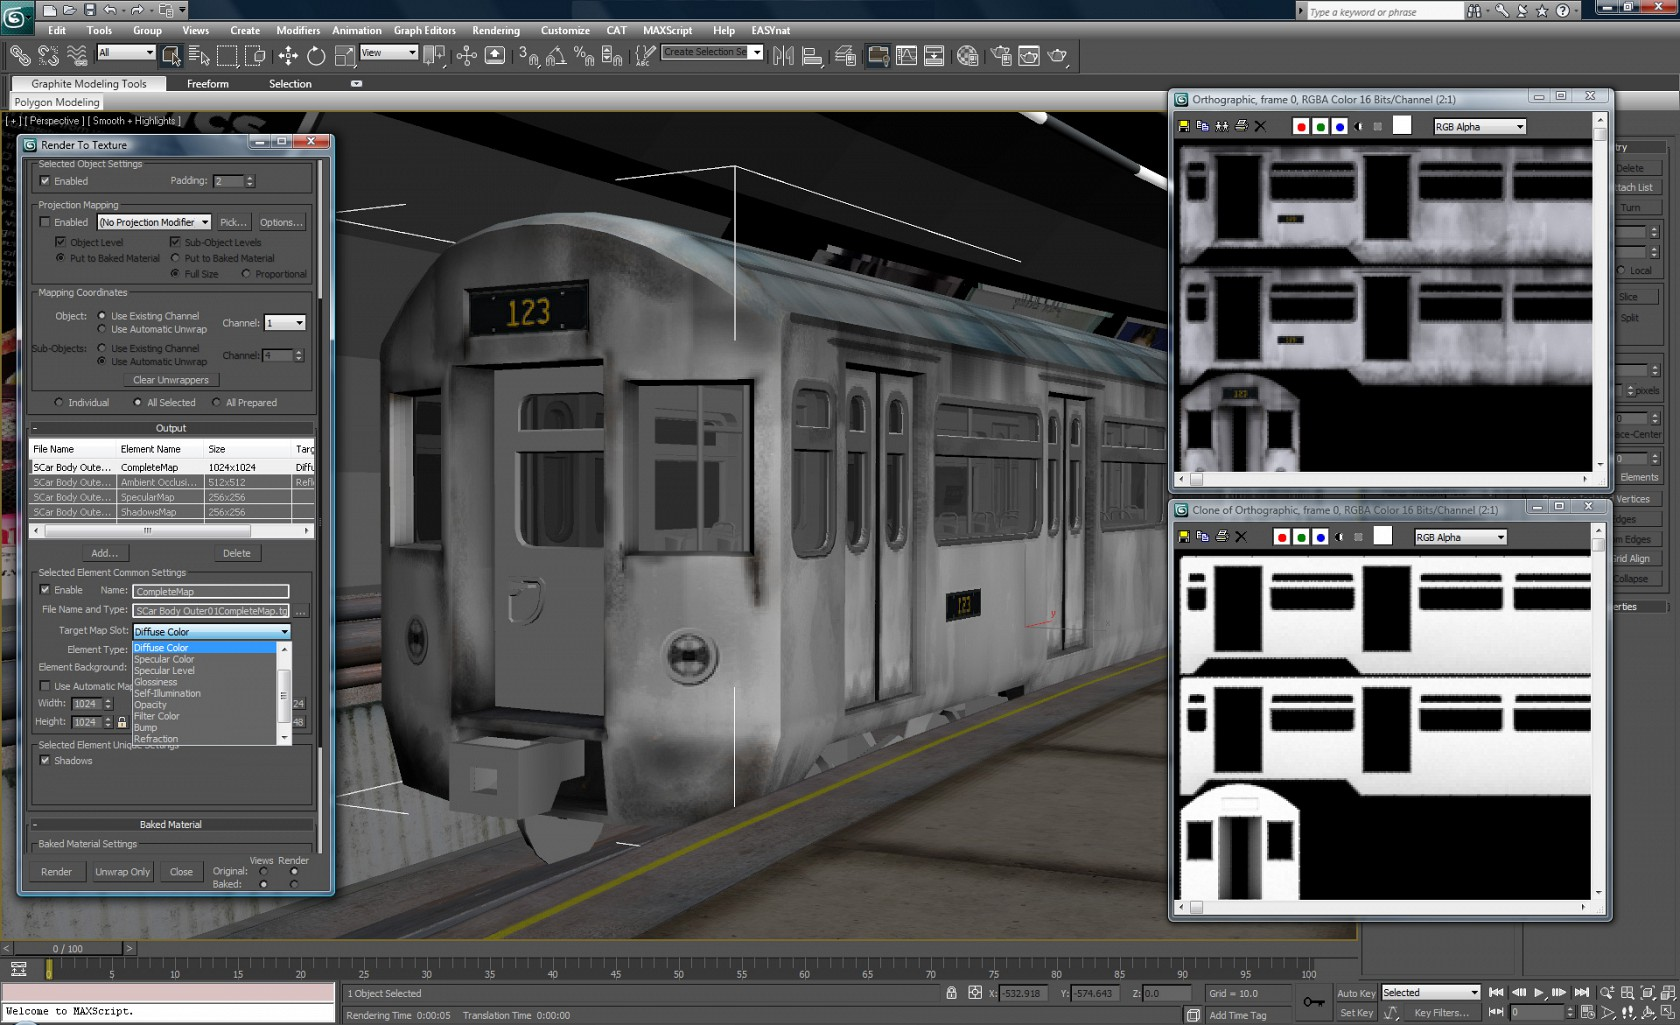 Buy autodesk 3ds max design 2012 sap download for windows for 3ds max design